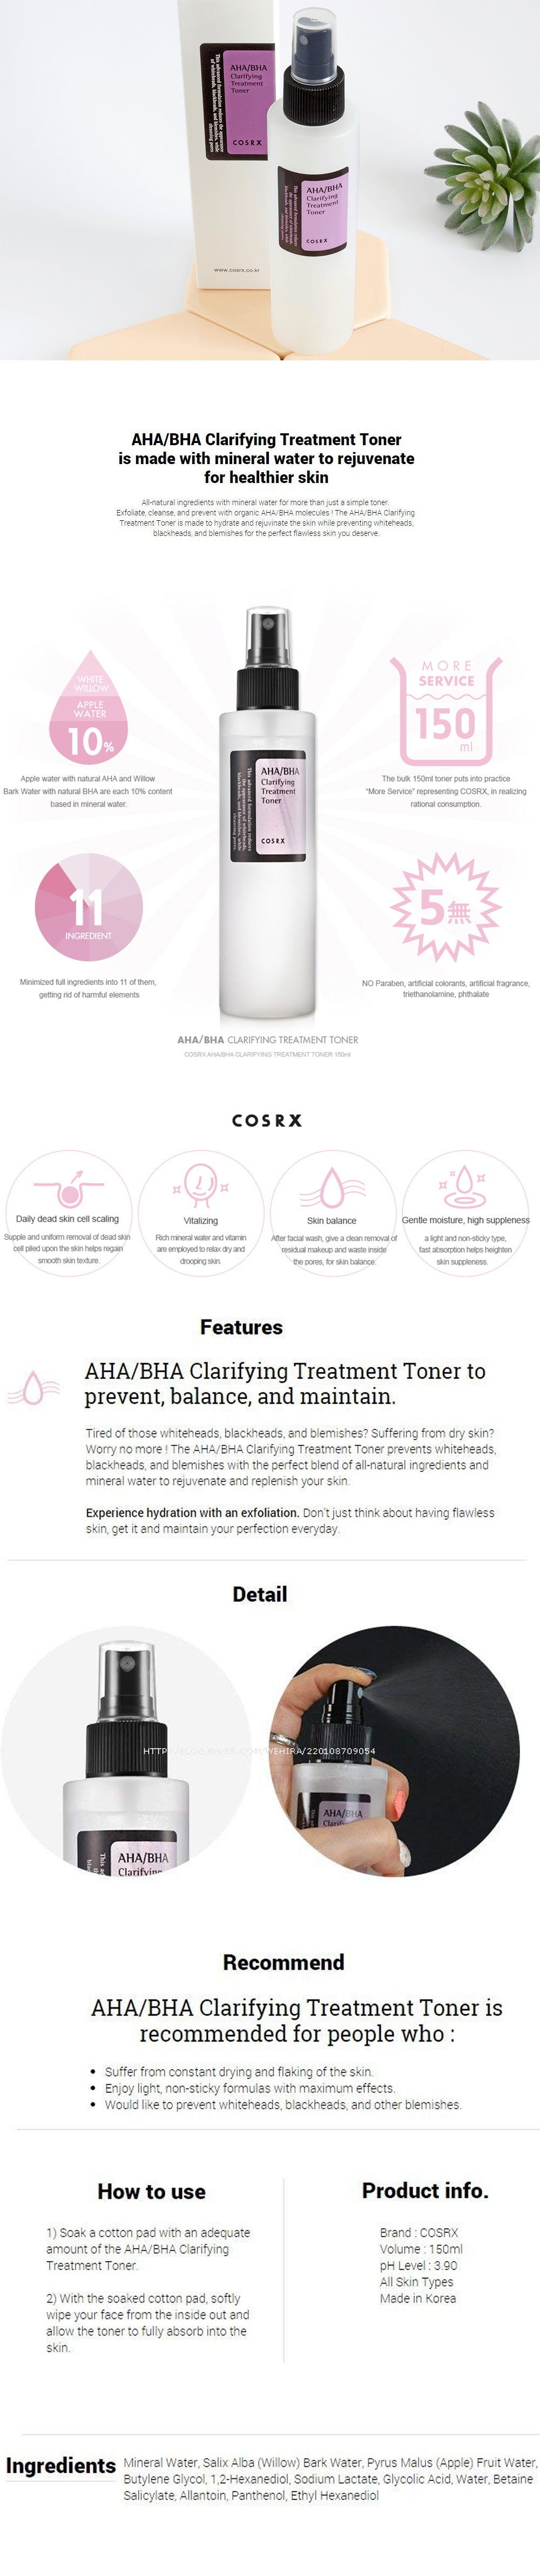 COSRX AHA/BHA Clarifying Treatment Toner Cosme Hut australia